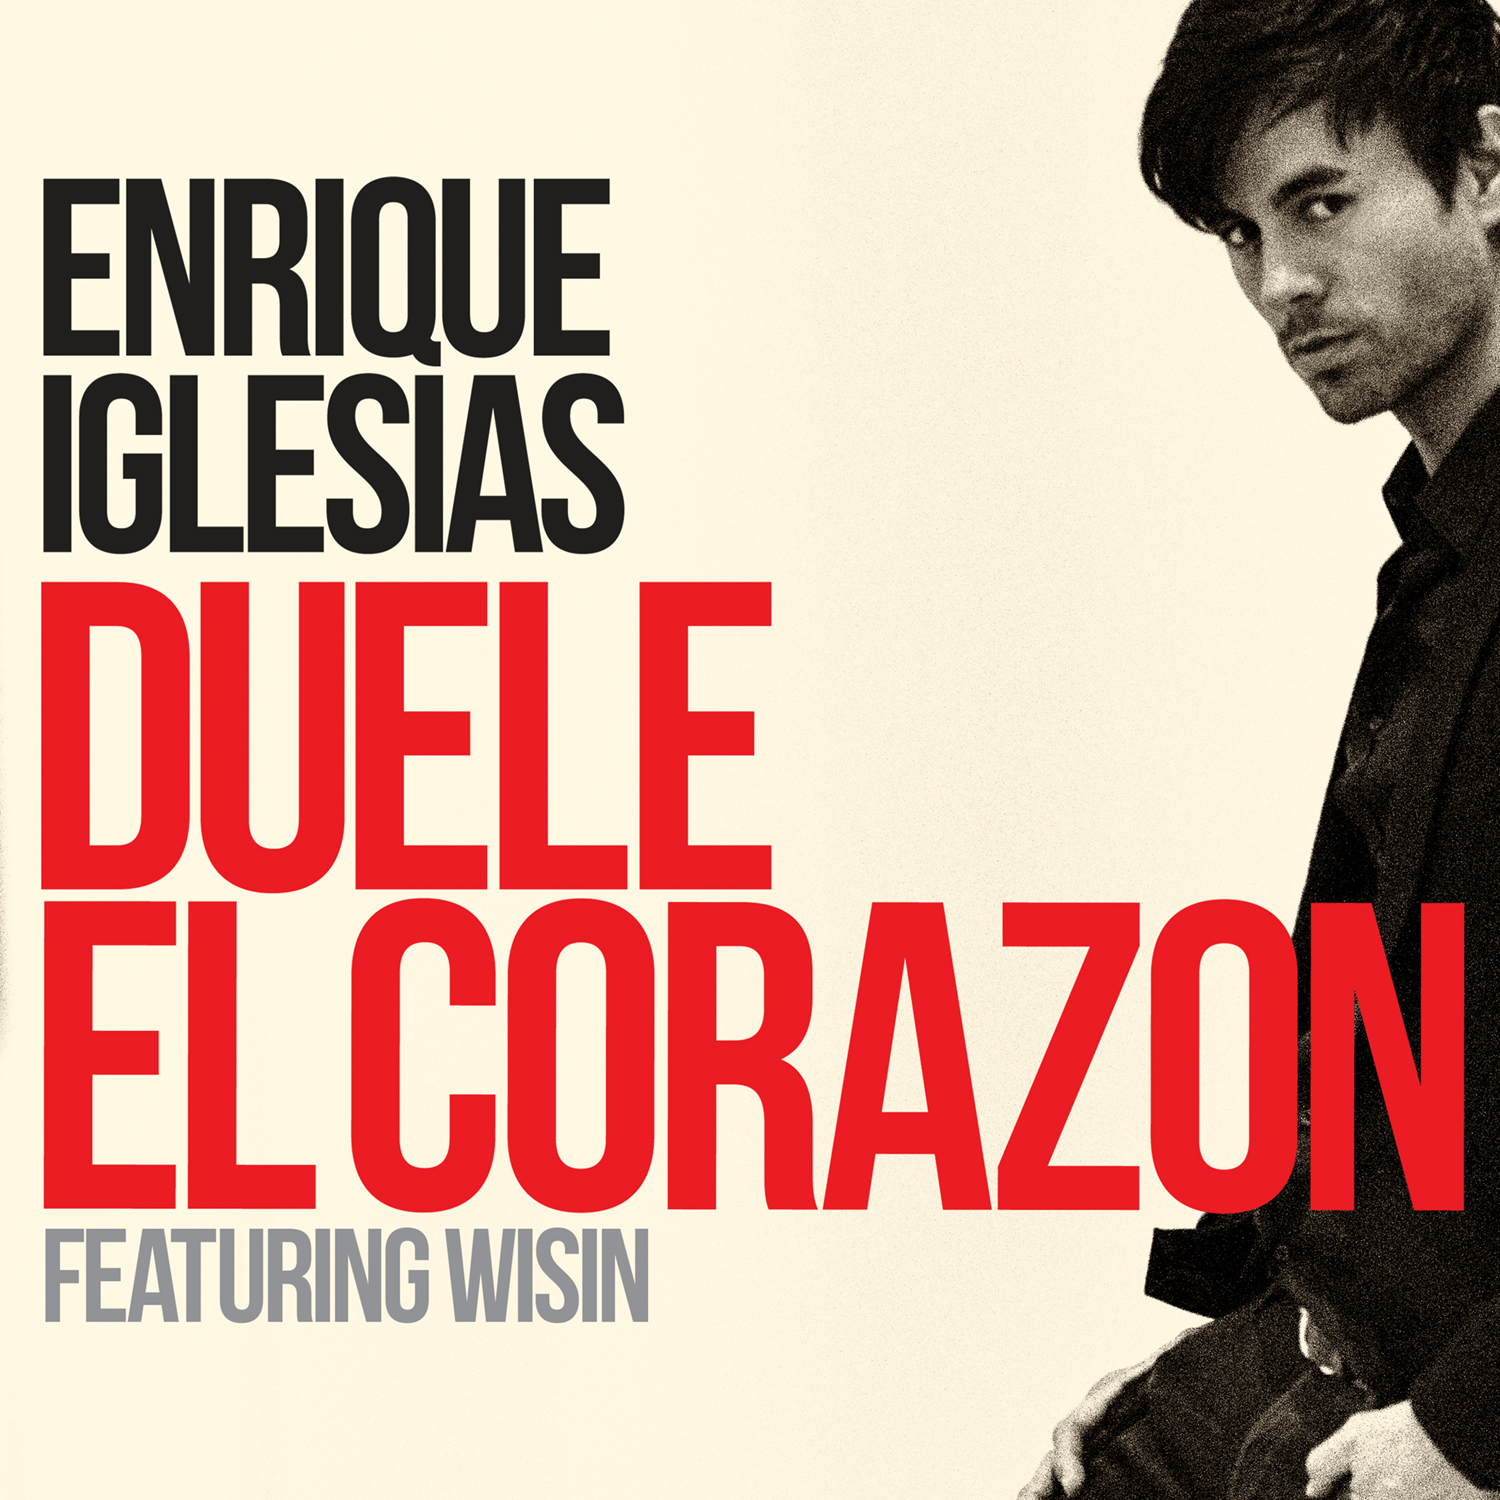 new madrid latin singles Enrique iglesias has sold  corner of the world including new york, mexico, madrid  1 singles on the billboard latin songs chart as well as.